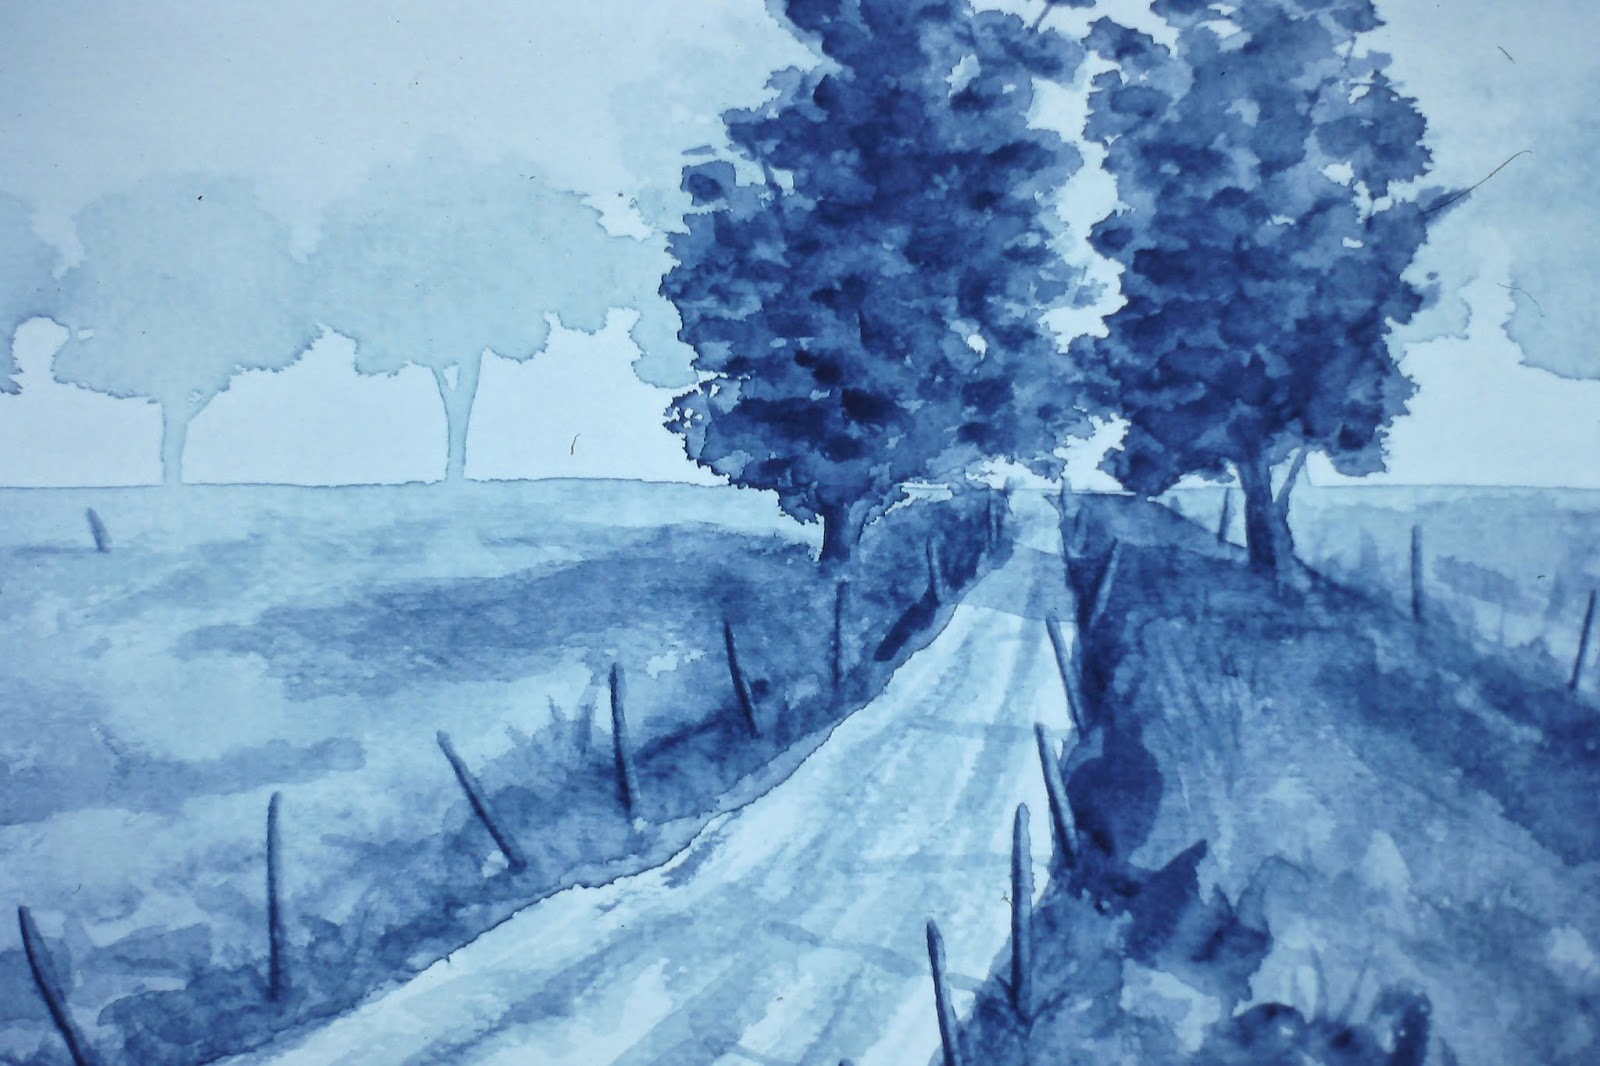 Back road near Laurencekirk, Angus, Scotland  7x10 inches. Ink wash on paper, c. 1990.  In a private collection in Brechin, Scotland